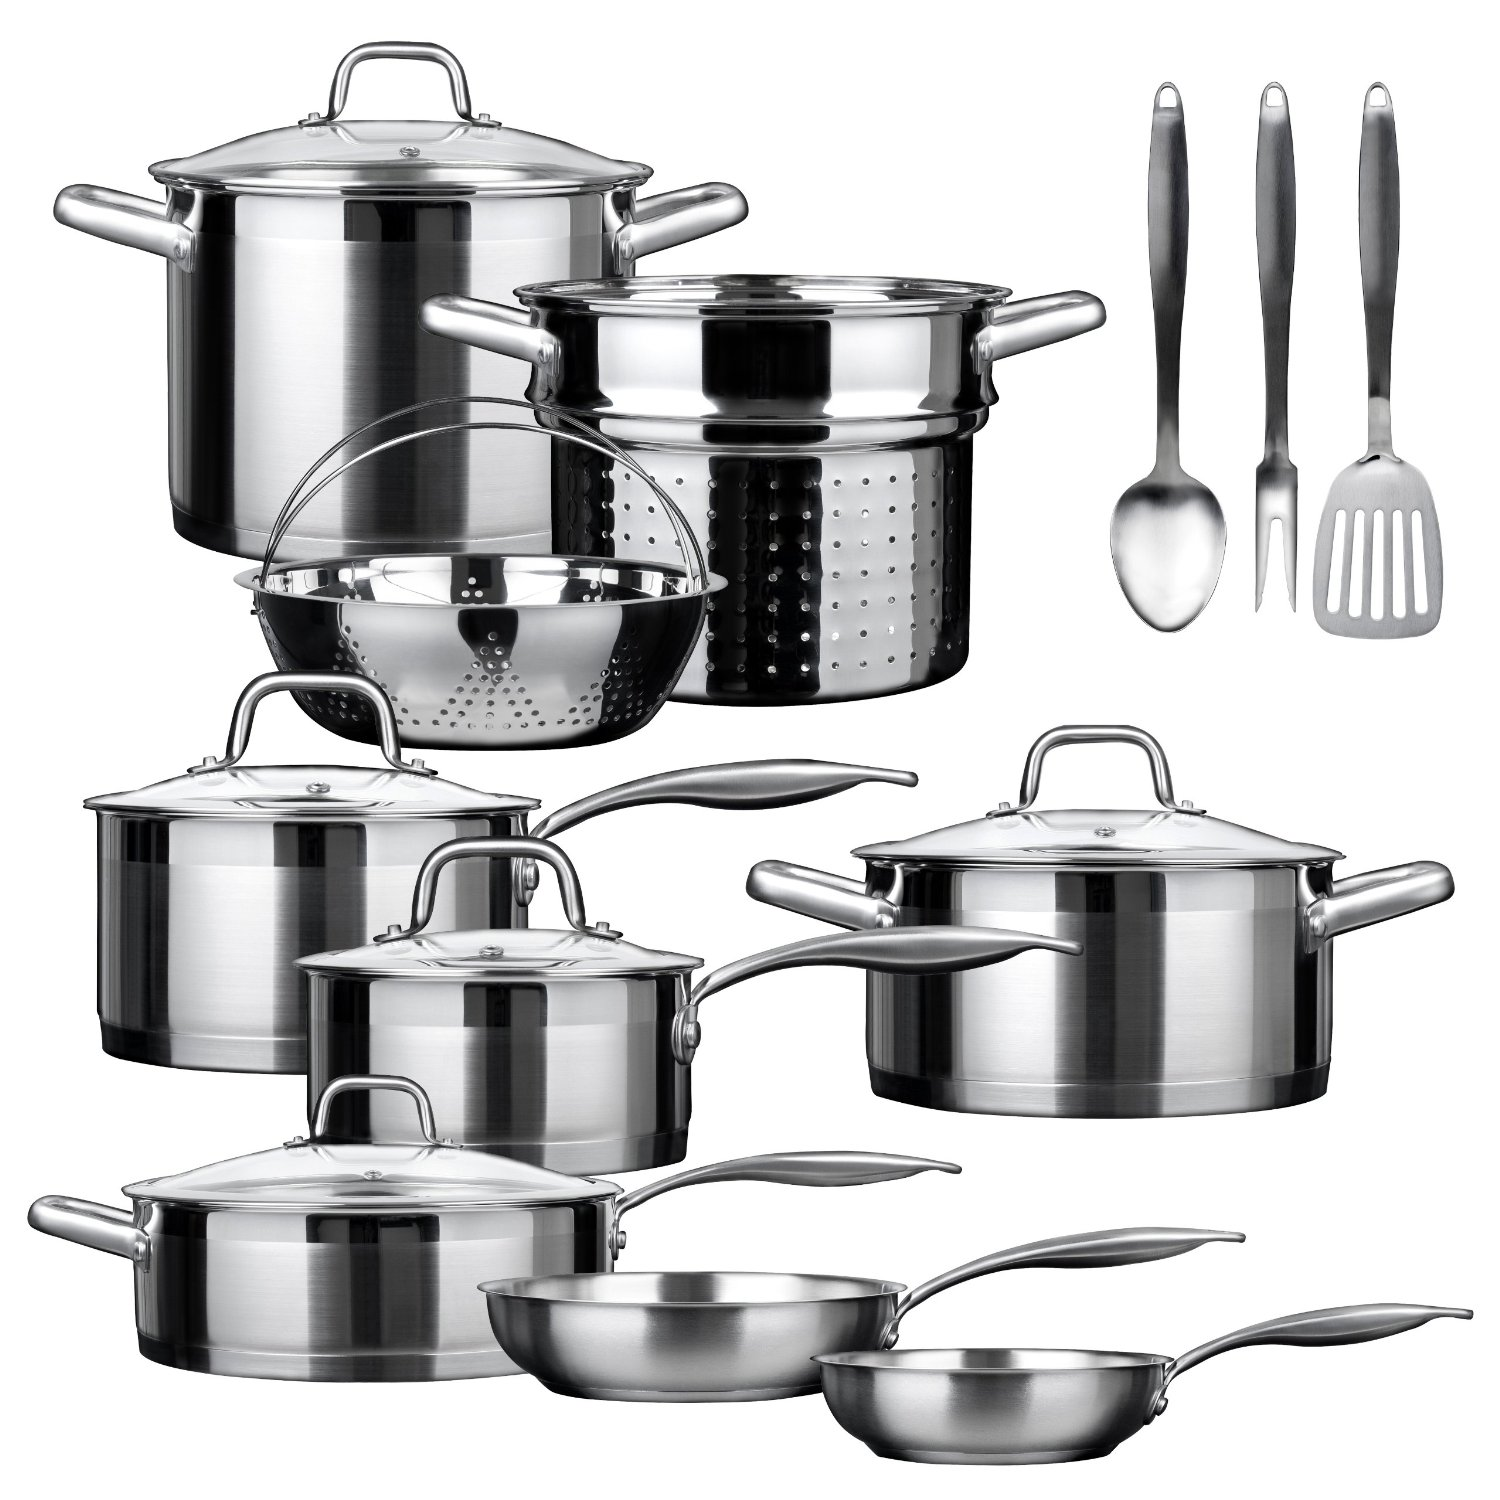 Duxtop Professional 17 Piece Review Stainless Steel Cookware